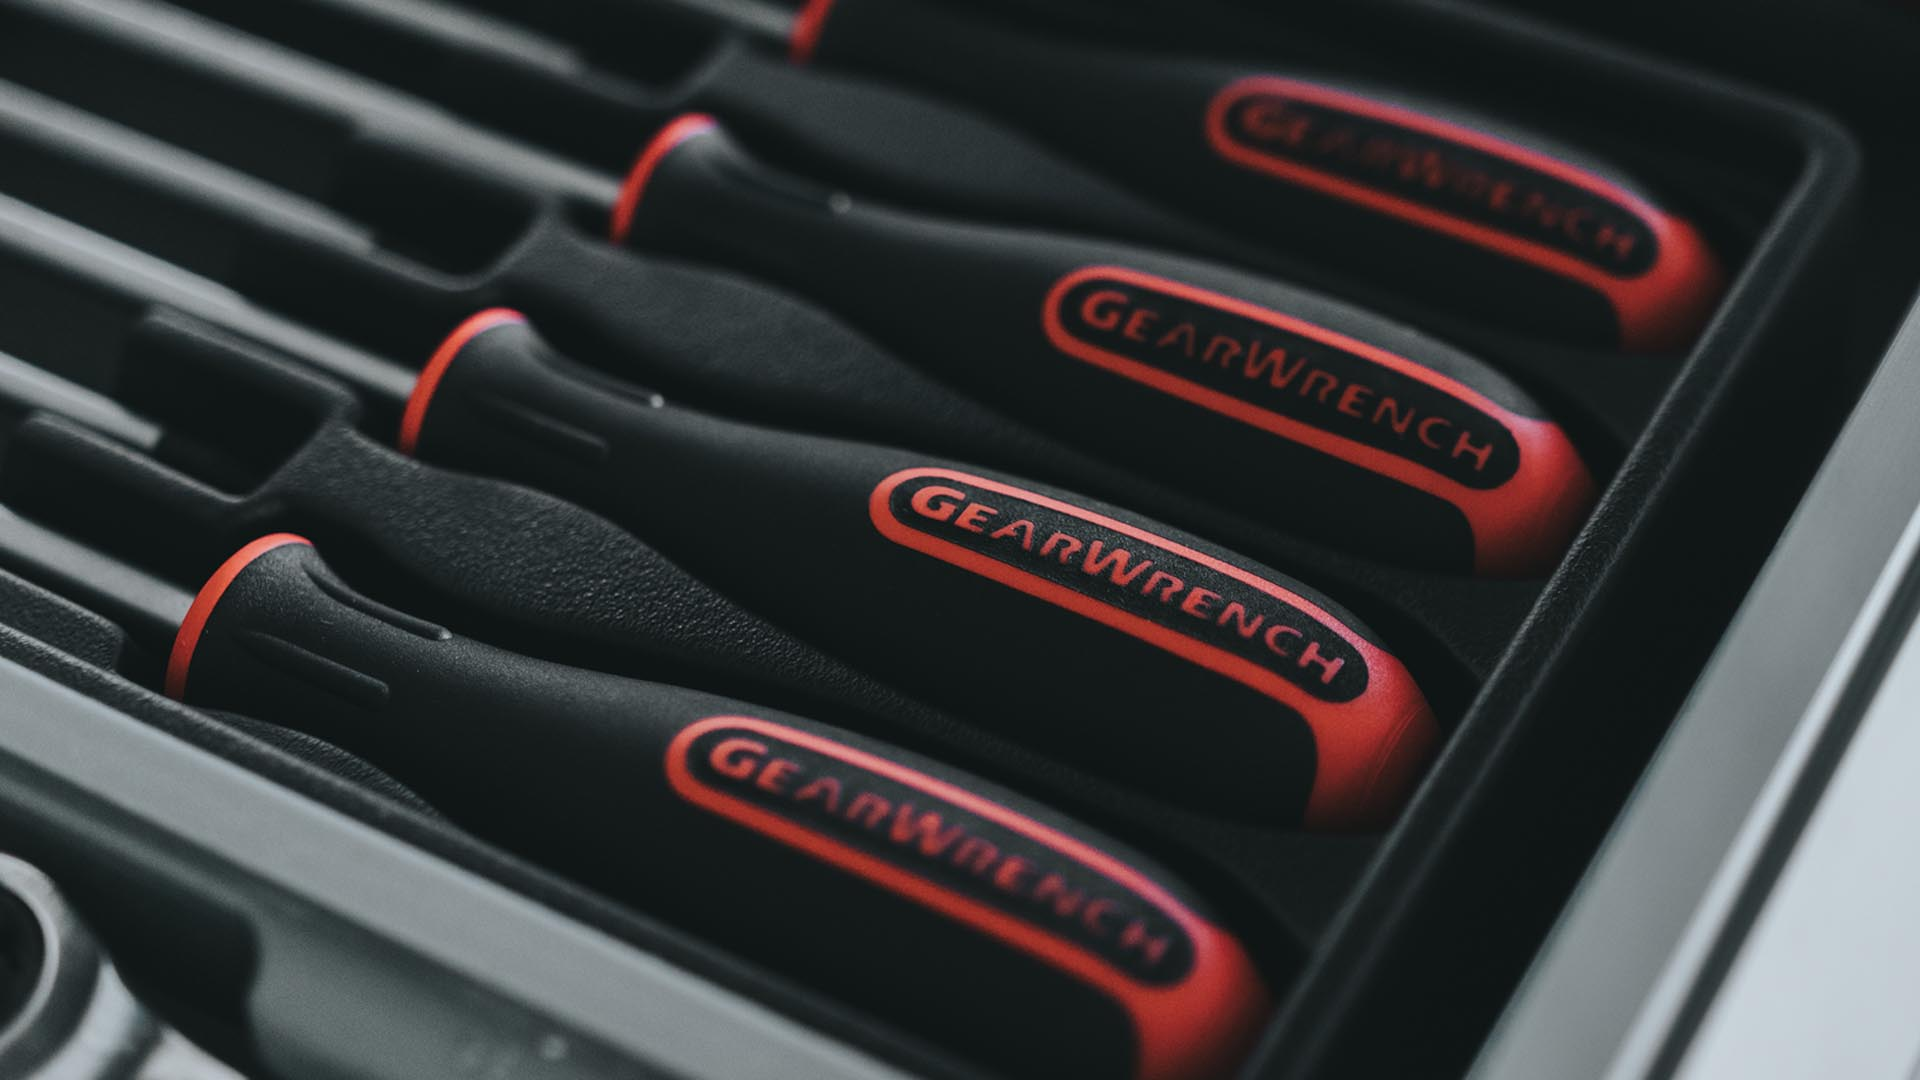 You Can Now Buy GearWrench Tools Through FCP Euro